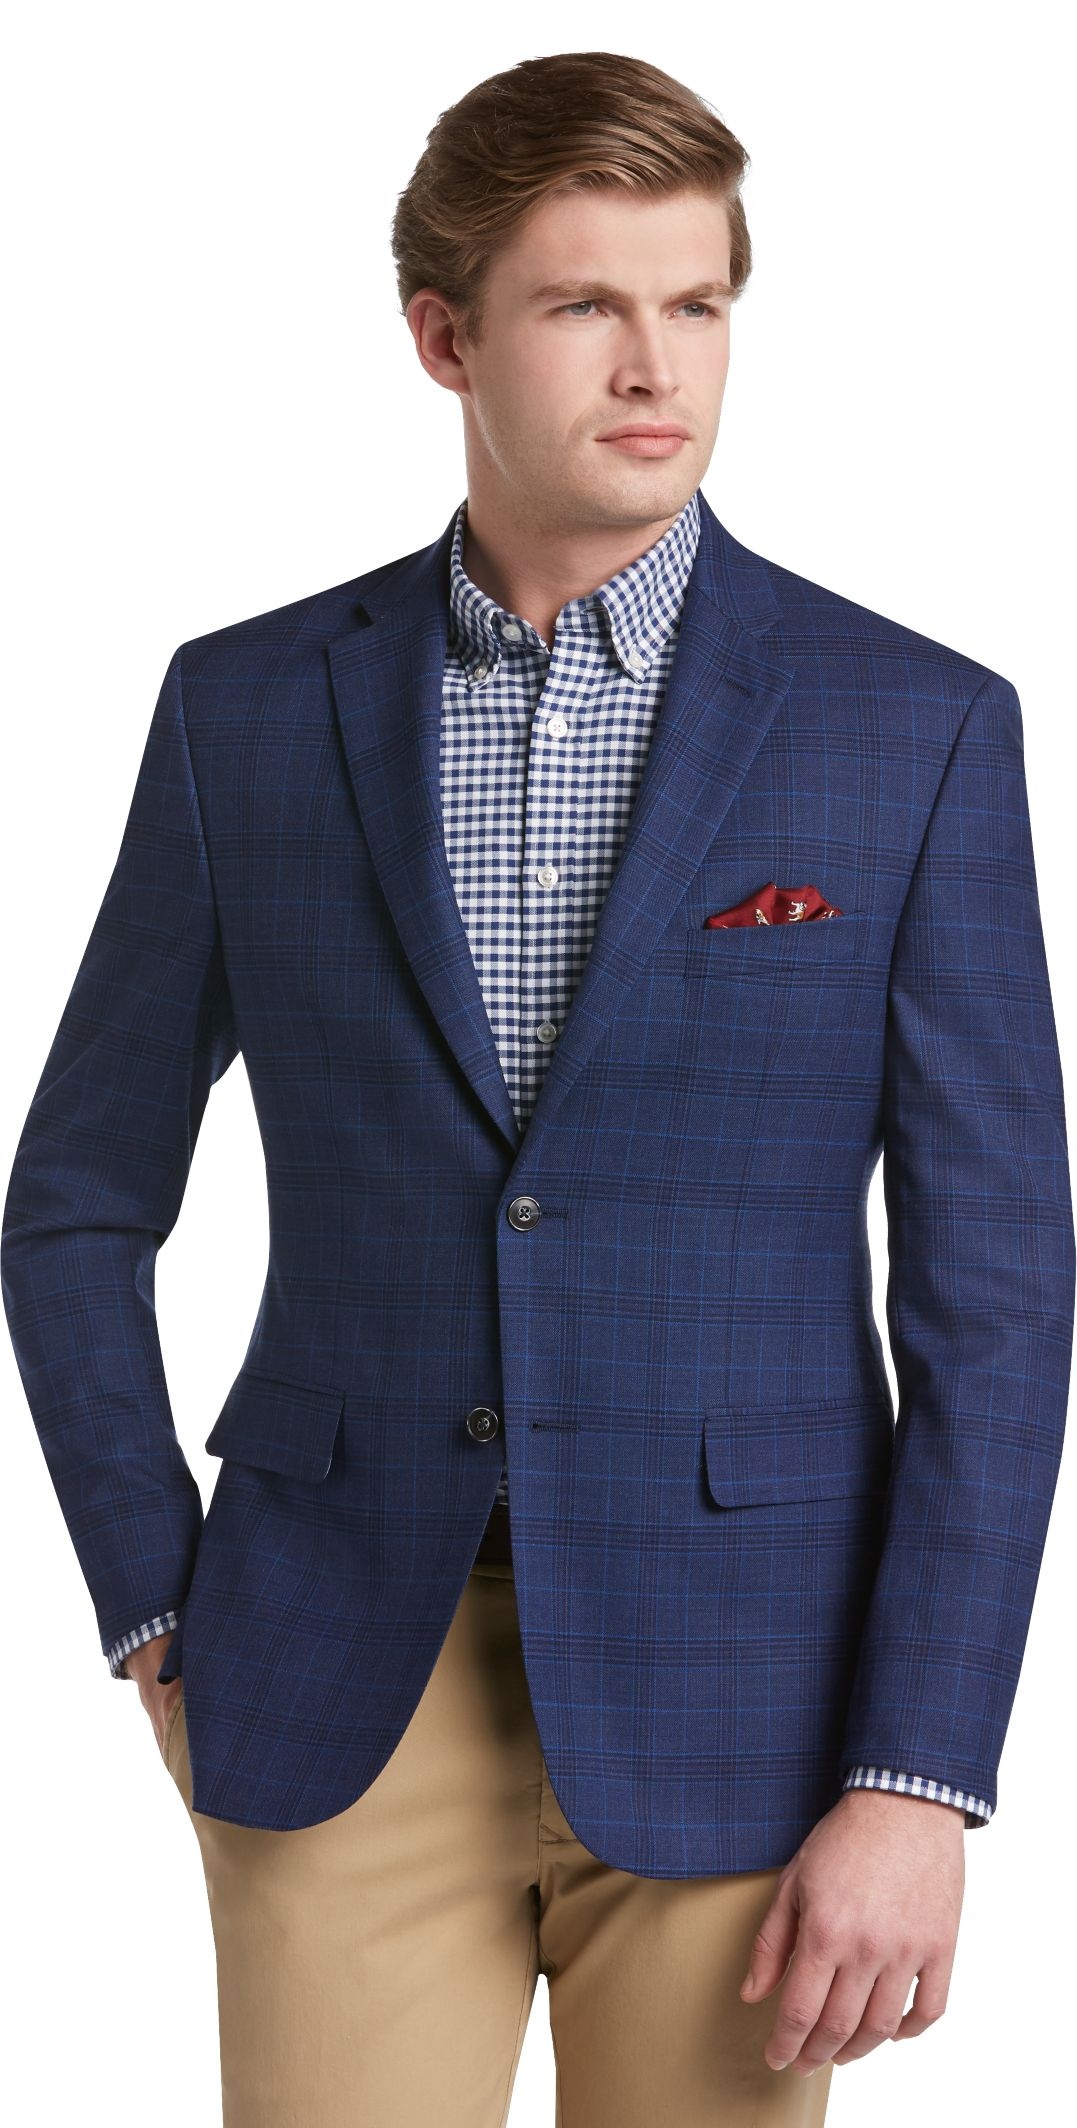 1905 Collection Tailored Fit Plaid Sportcoat - 1905 Sportcoats ...